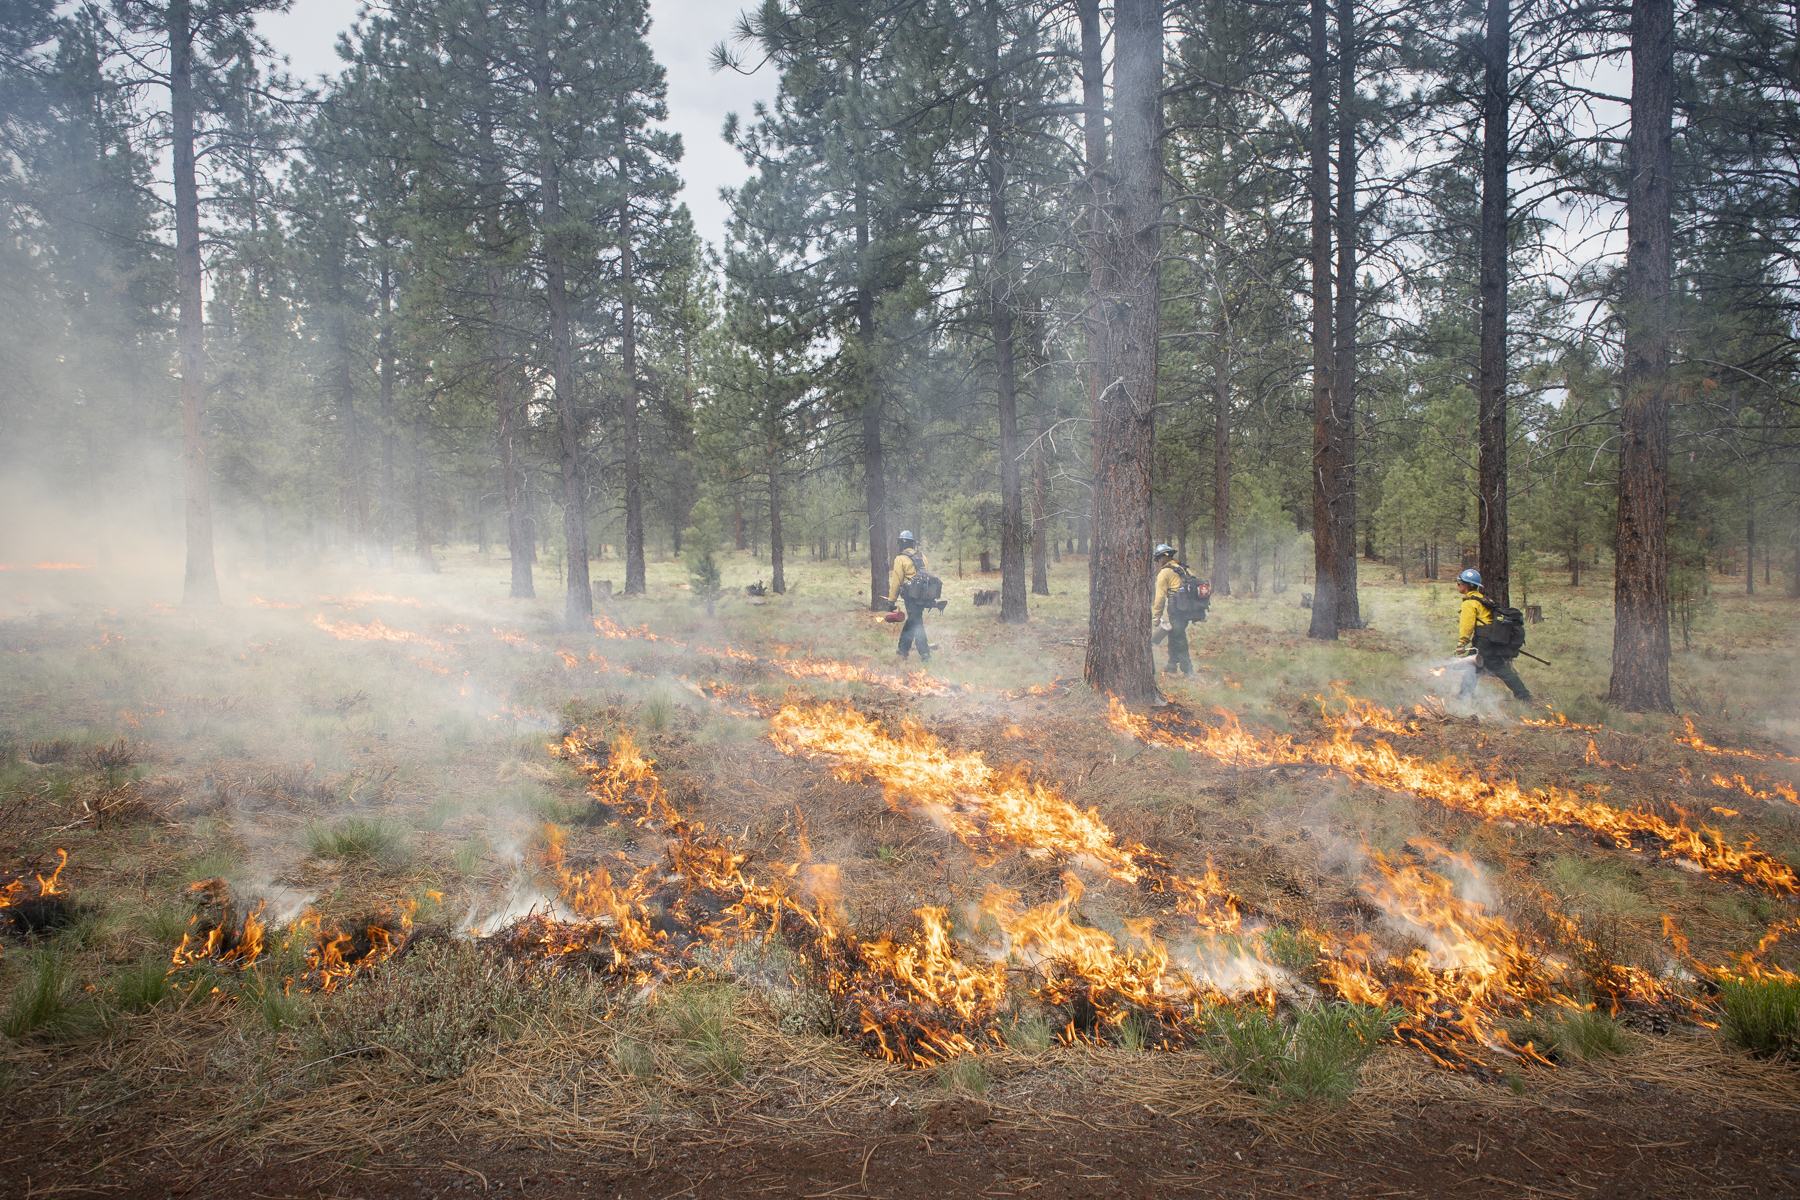 Low-intesity flames traveled across the forest floor during a carefully planned prescribed fire at the Museum this past spring.